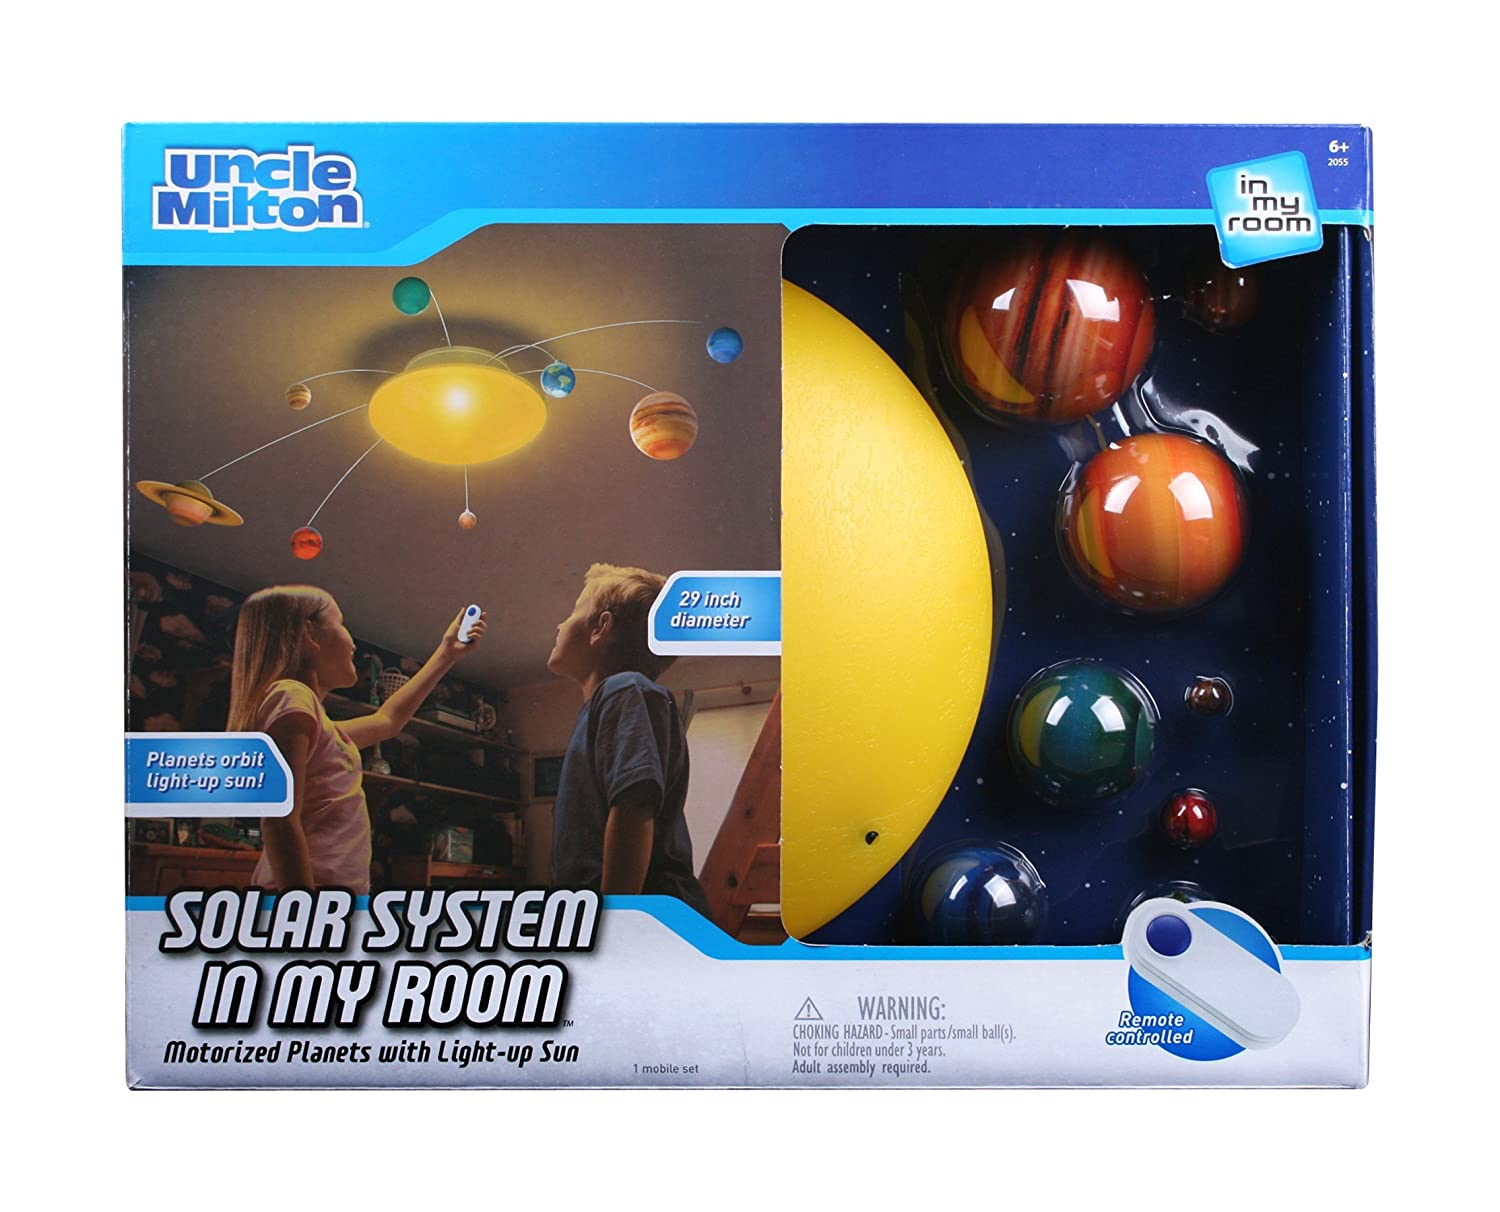 Amazon uncle milton solar system in my room remote control home amazon uncle milton solar system in my room remote control home dcor night light toys games aloadofball Gallery